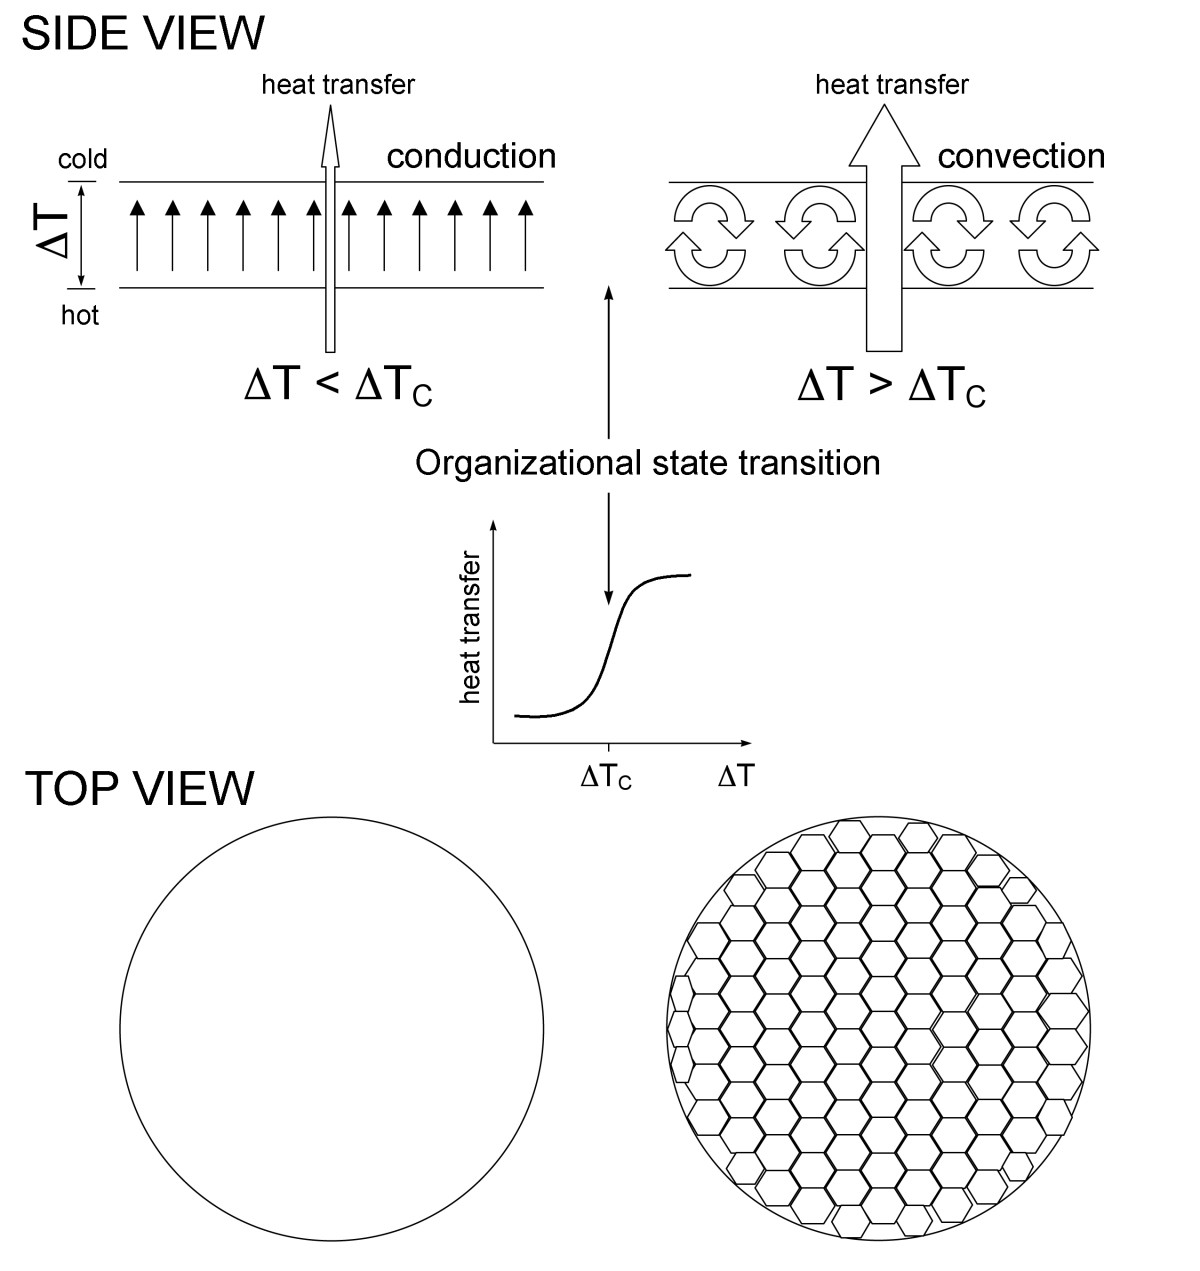 http://static-content.springer.com/image/art%3A10.1186%2F1742-4682-8-4/MediaObjects/12976_2010_Article_278_Fig1_HTML.jpg